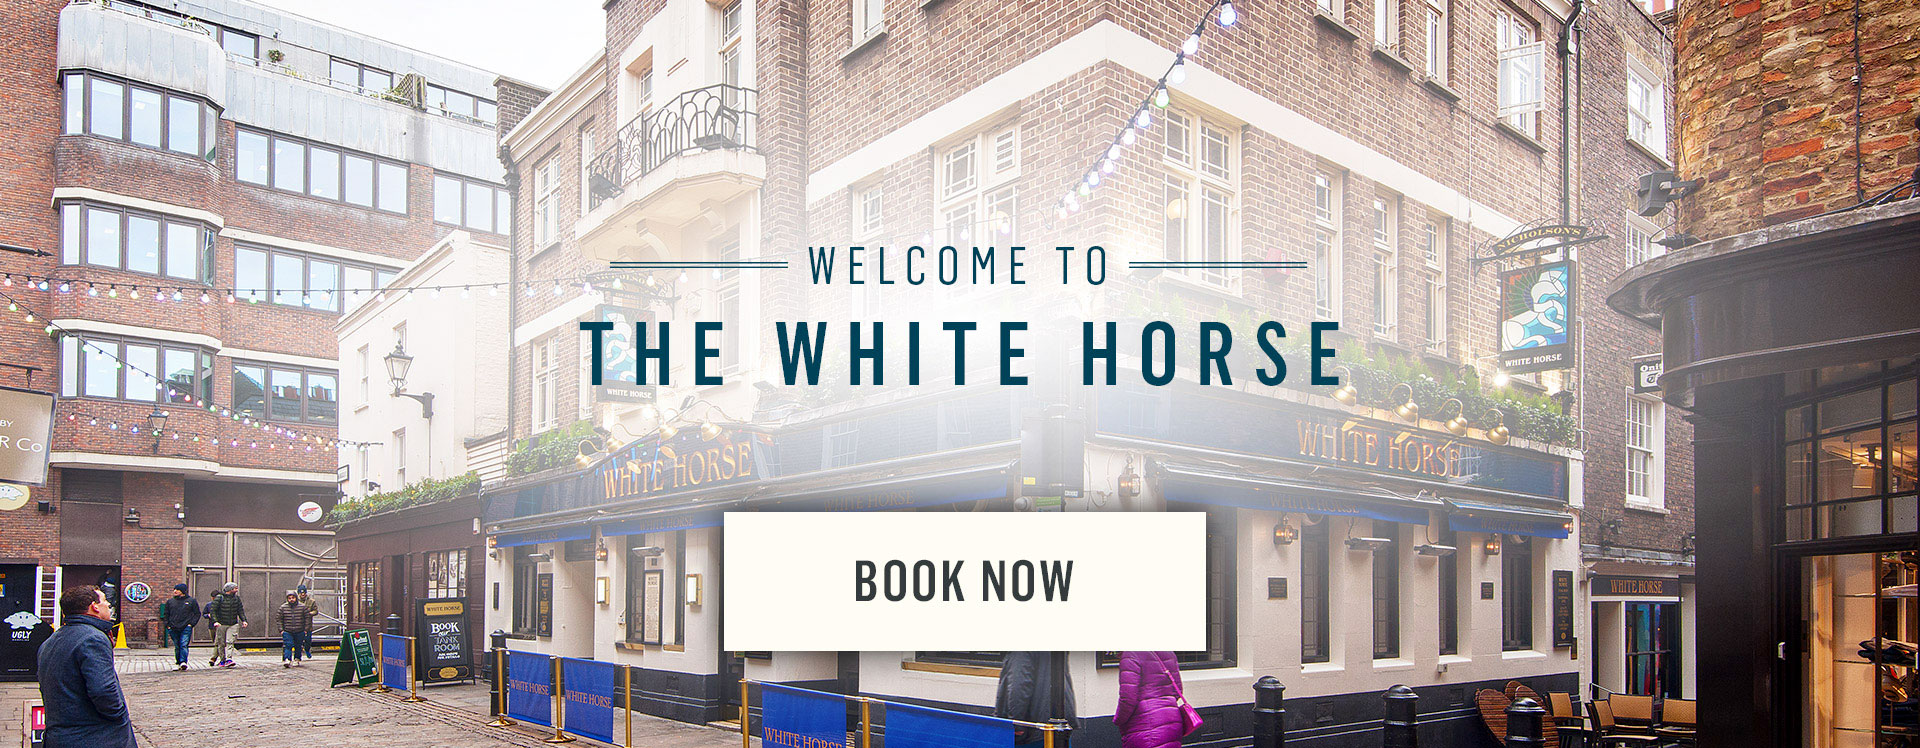 Welcome to The White Horse - Book Now